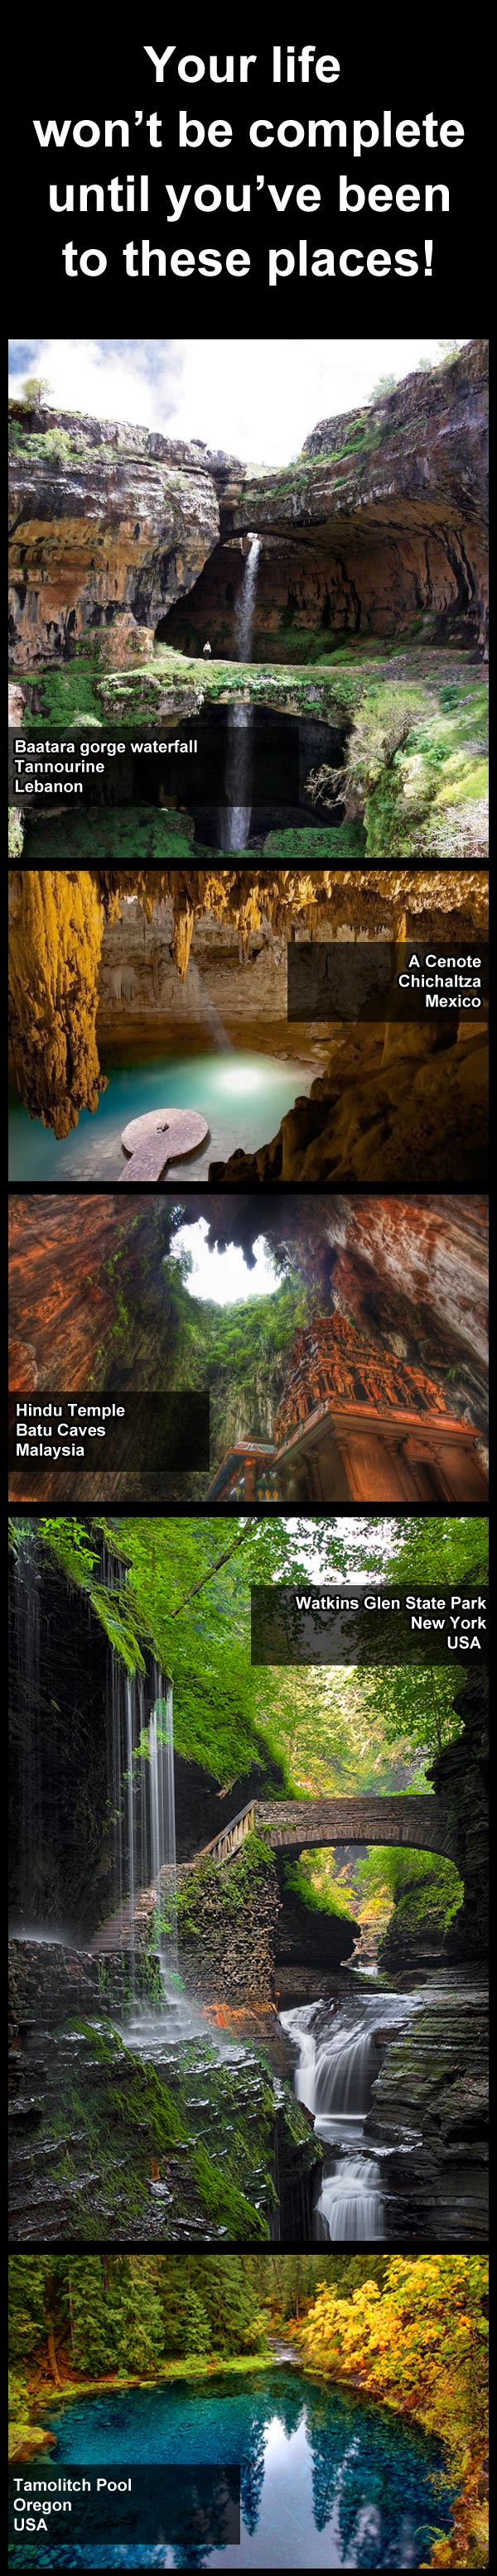 Some of the worlds most beautiful places